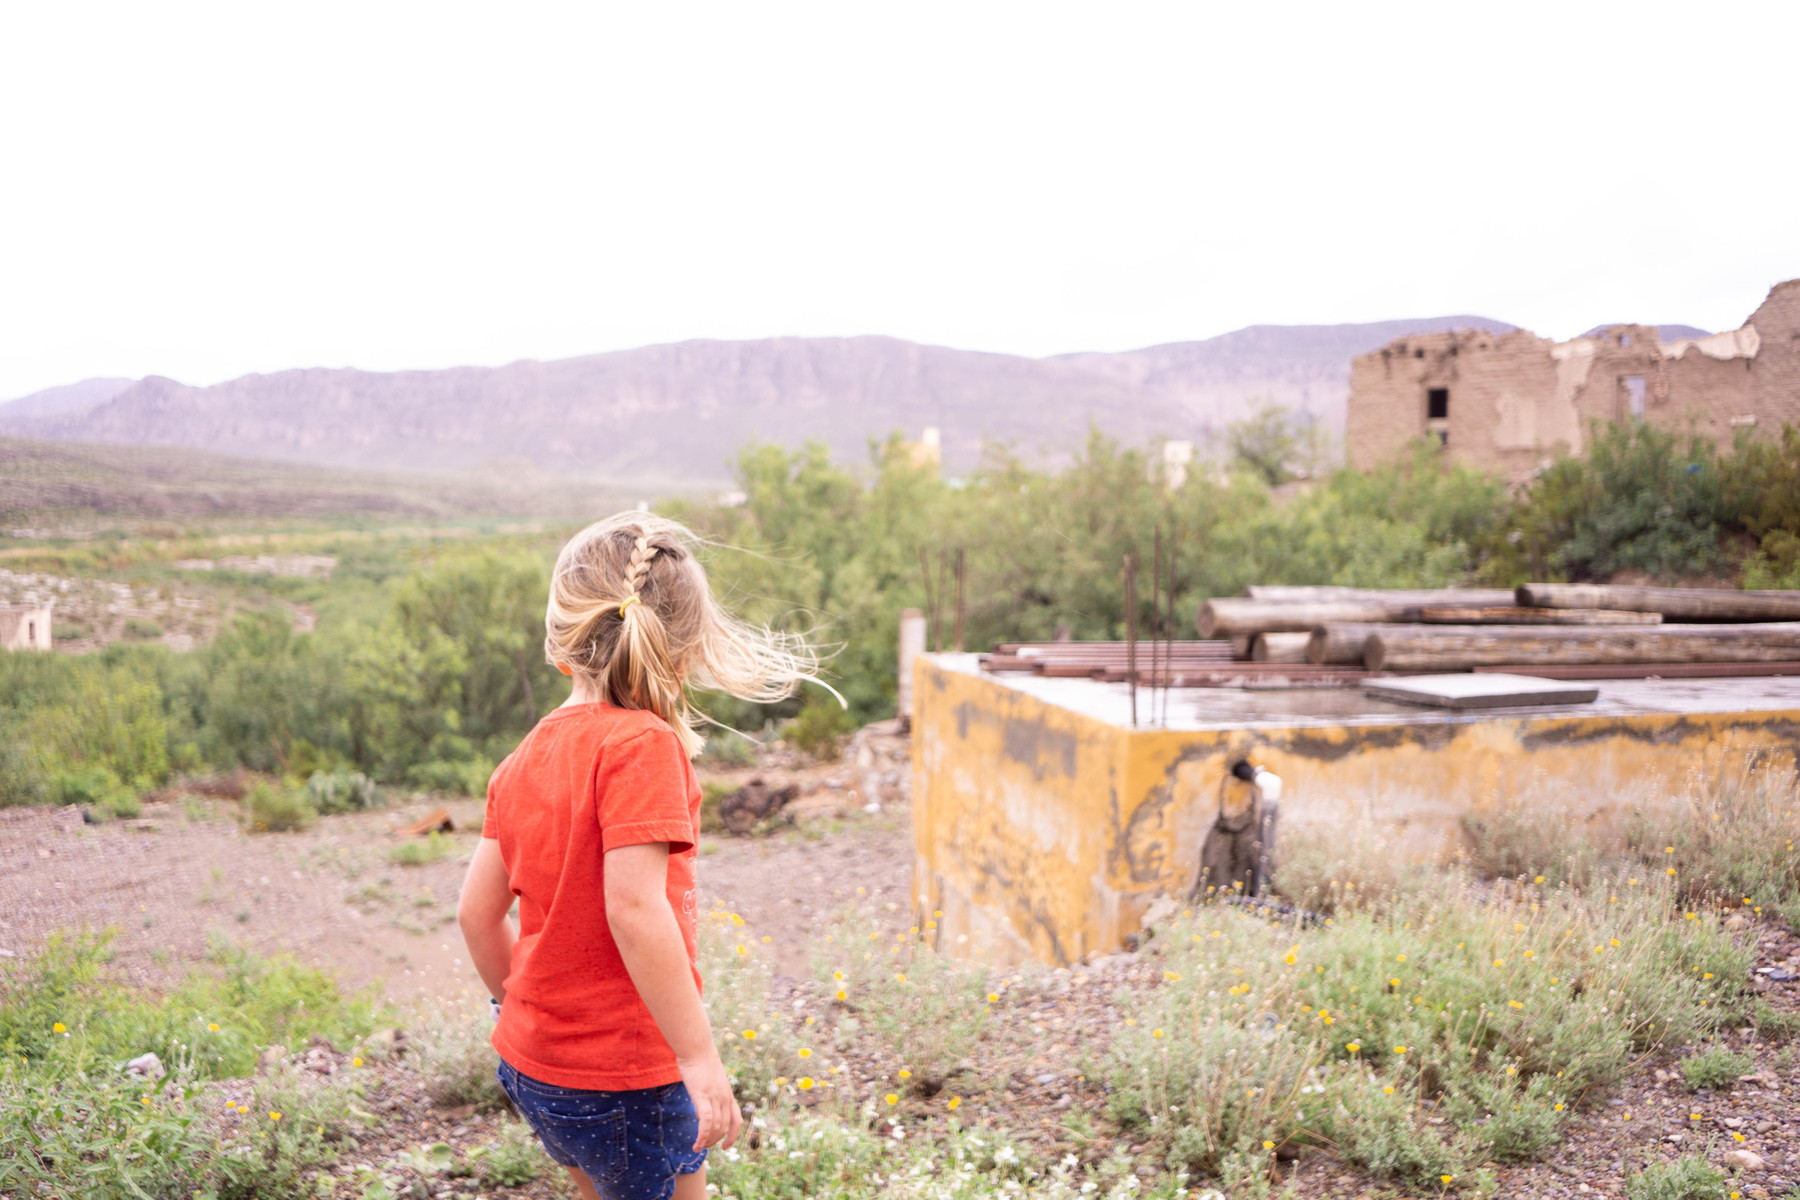 Charletta exploring the small town of Boquillas, Mexico